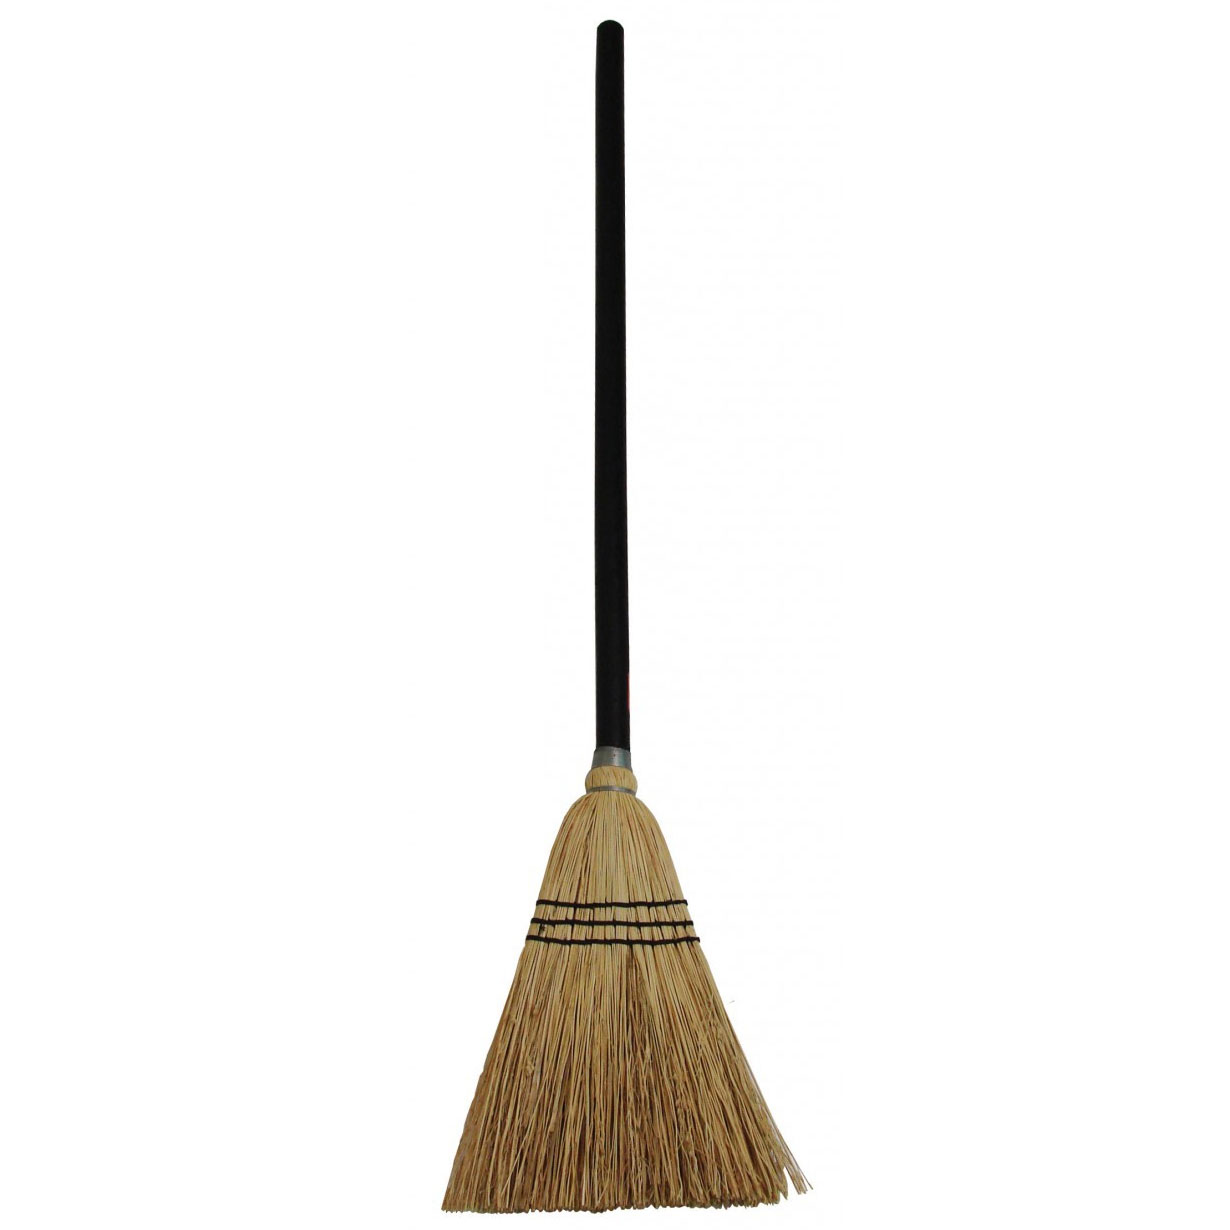 Corn Fibers Lobby Broom